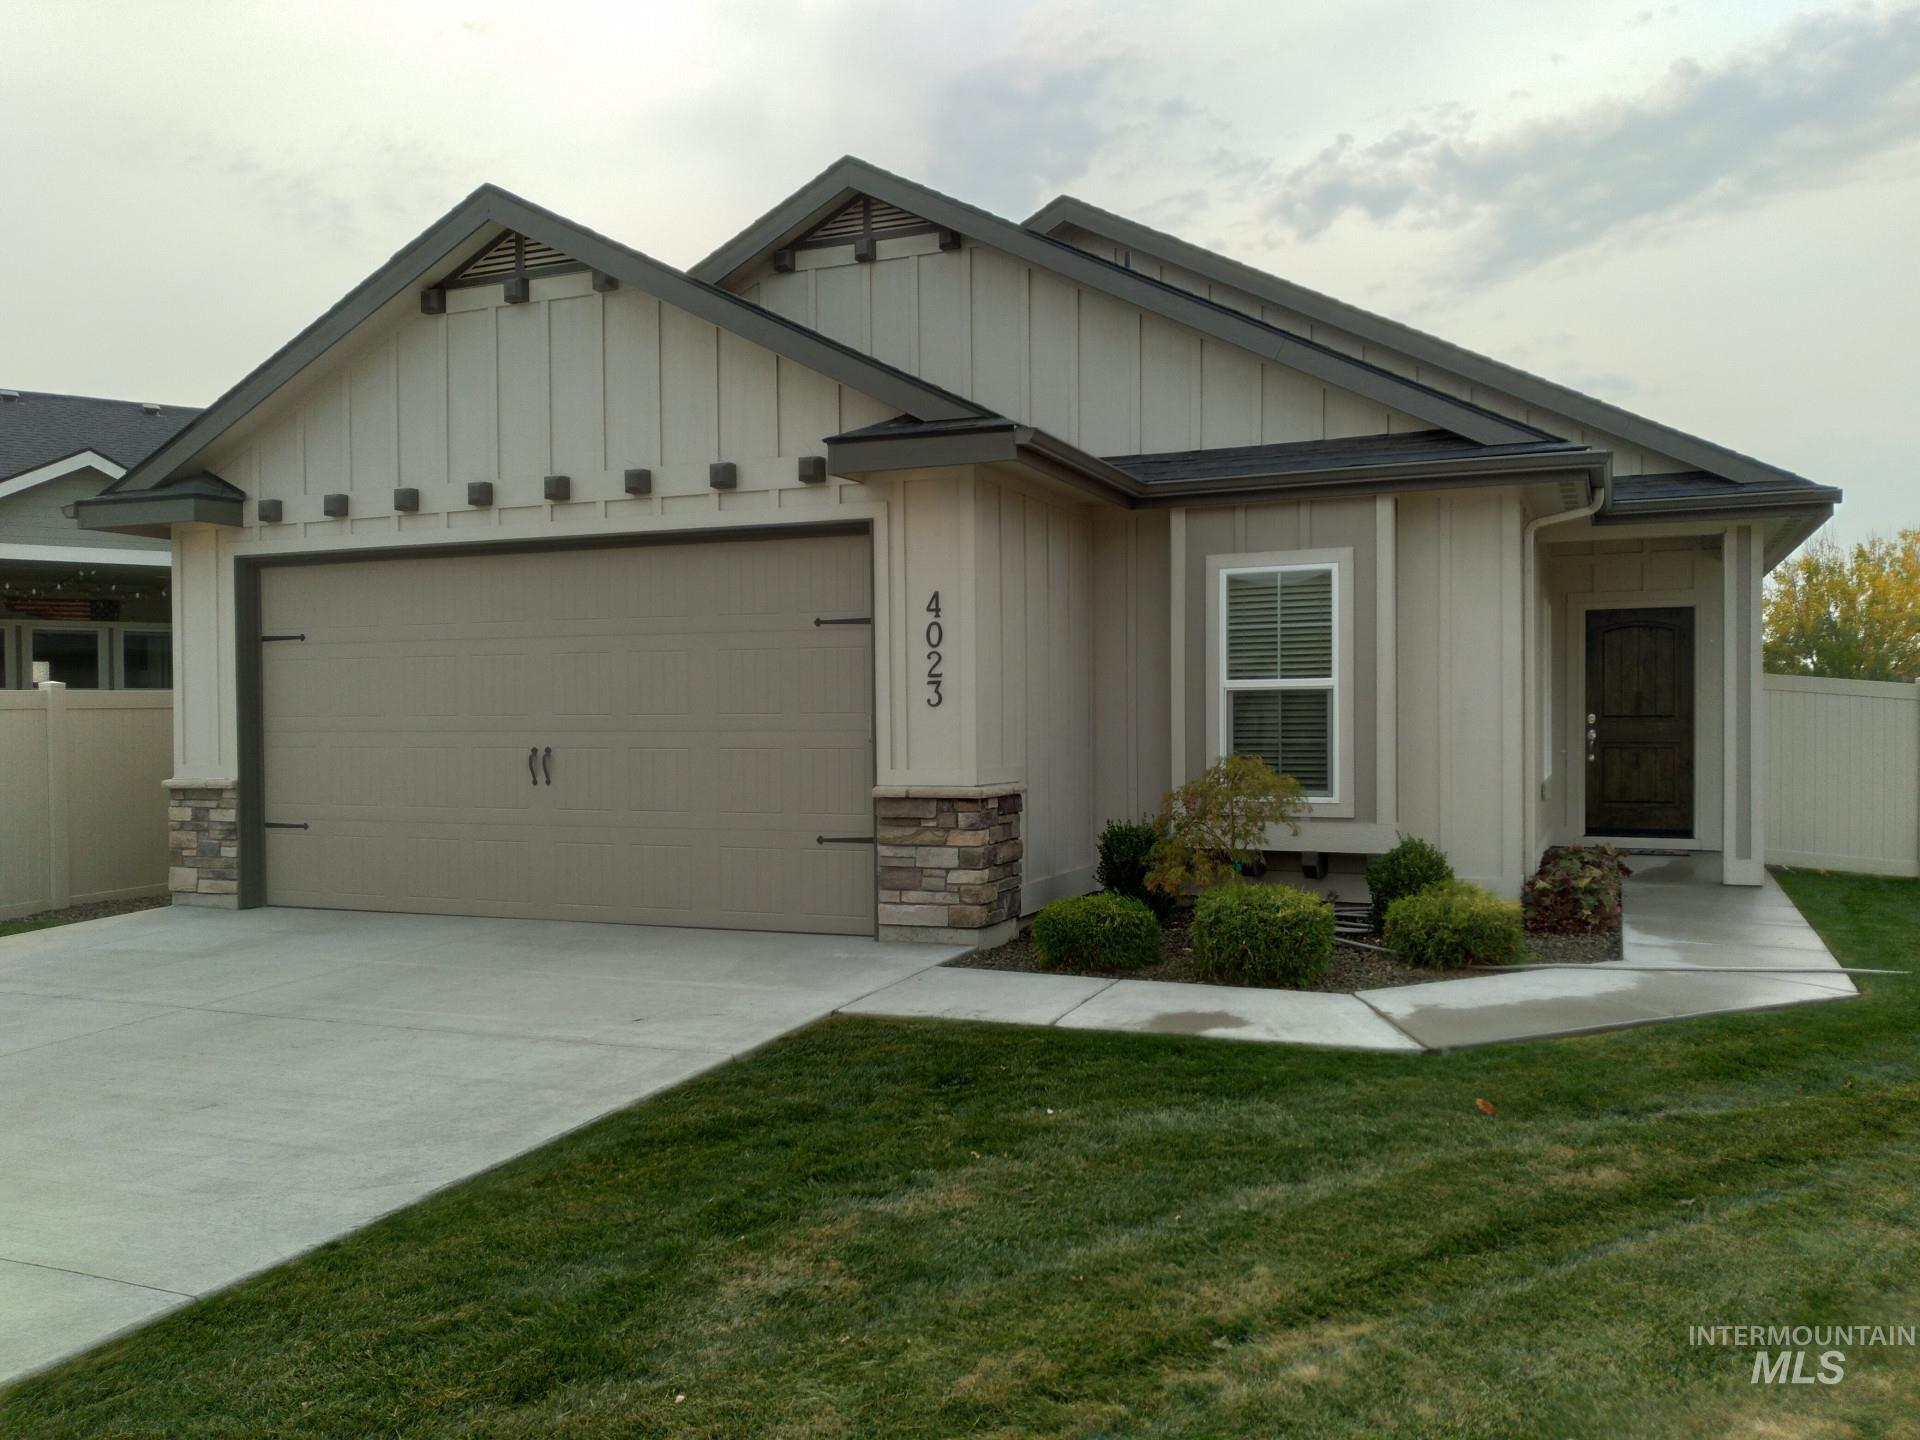 Photo of 4023 Lava Springs Nampa ID 83686